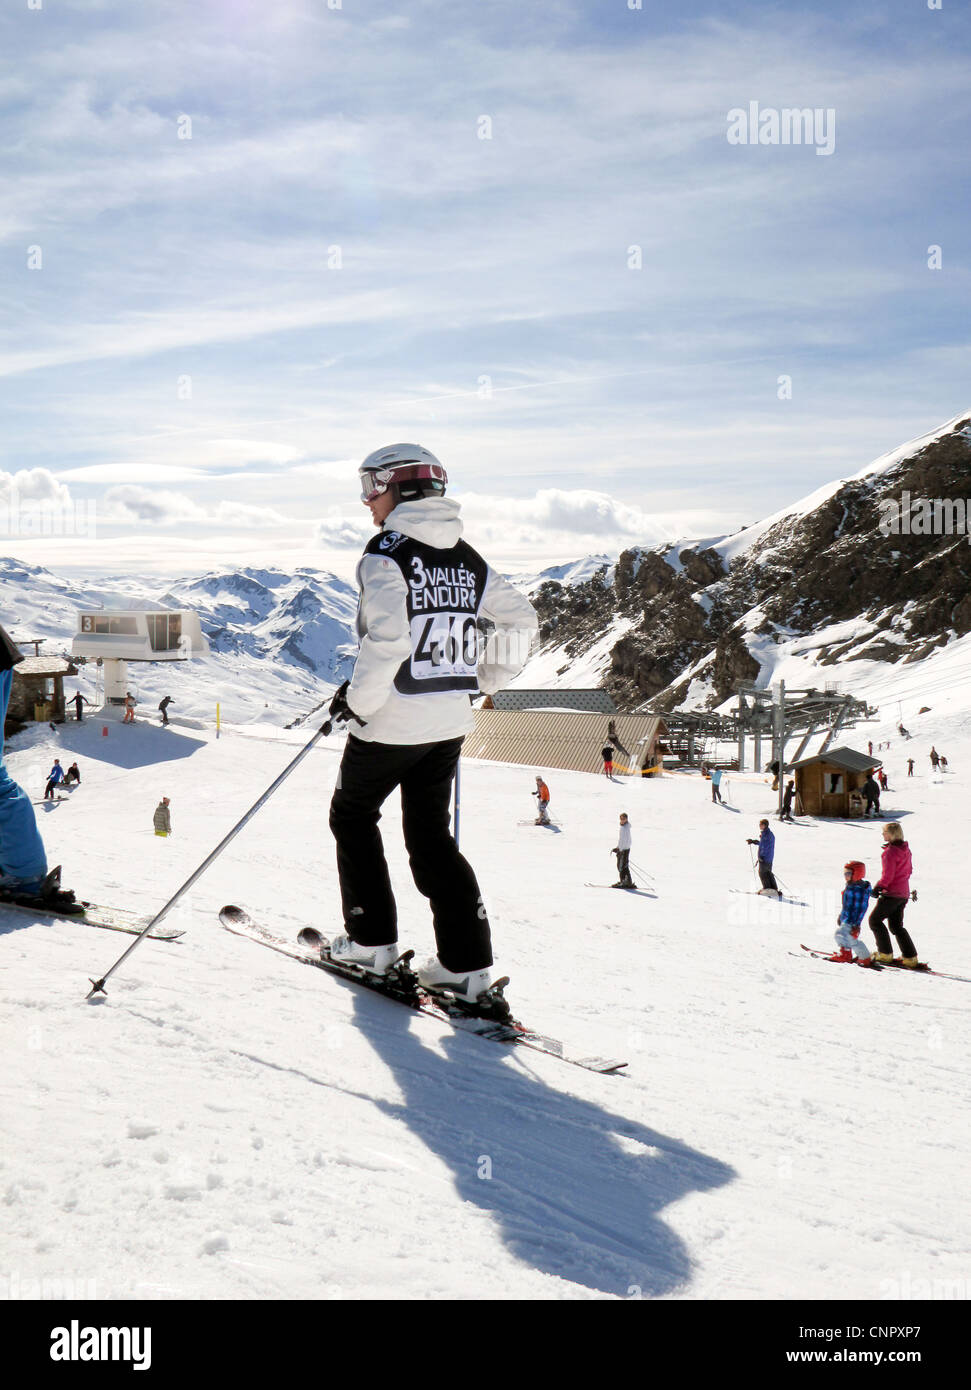 A skier skiing in the Three Valleys ski slopes, French Alps, France Europe - Stock Image